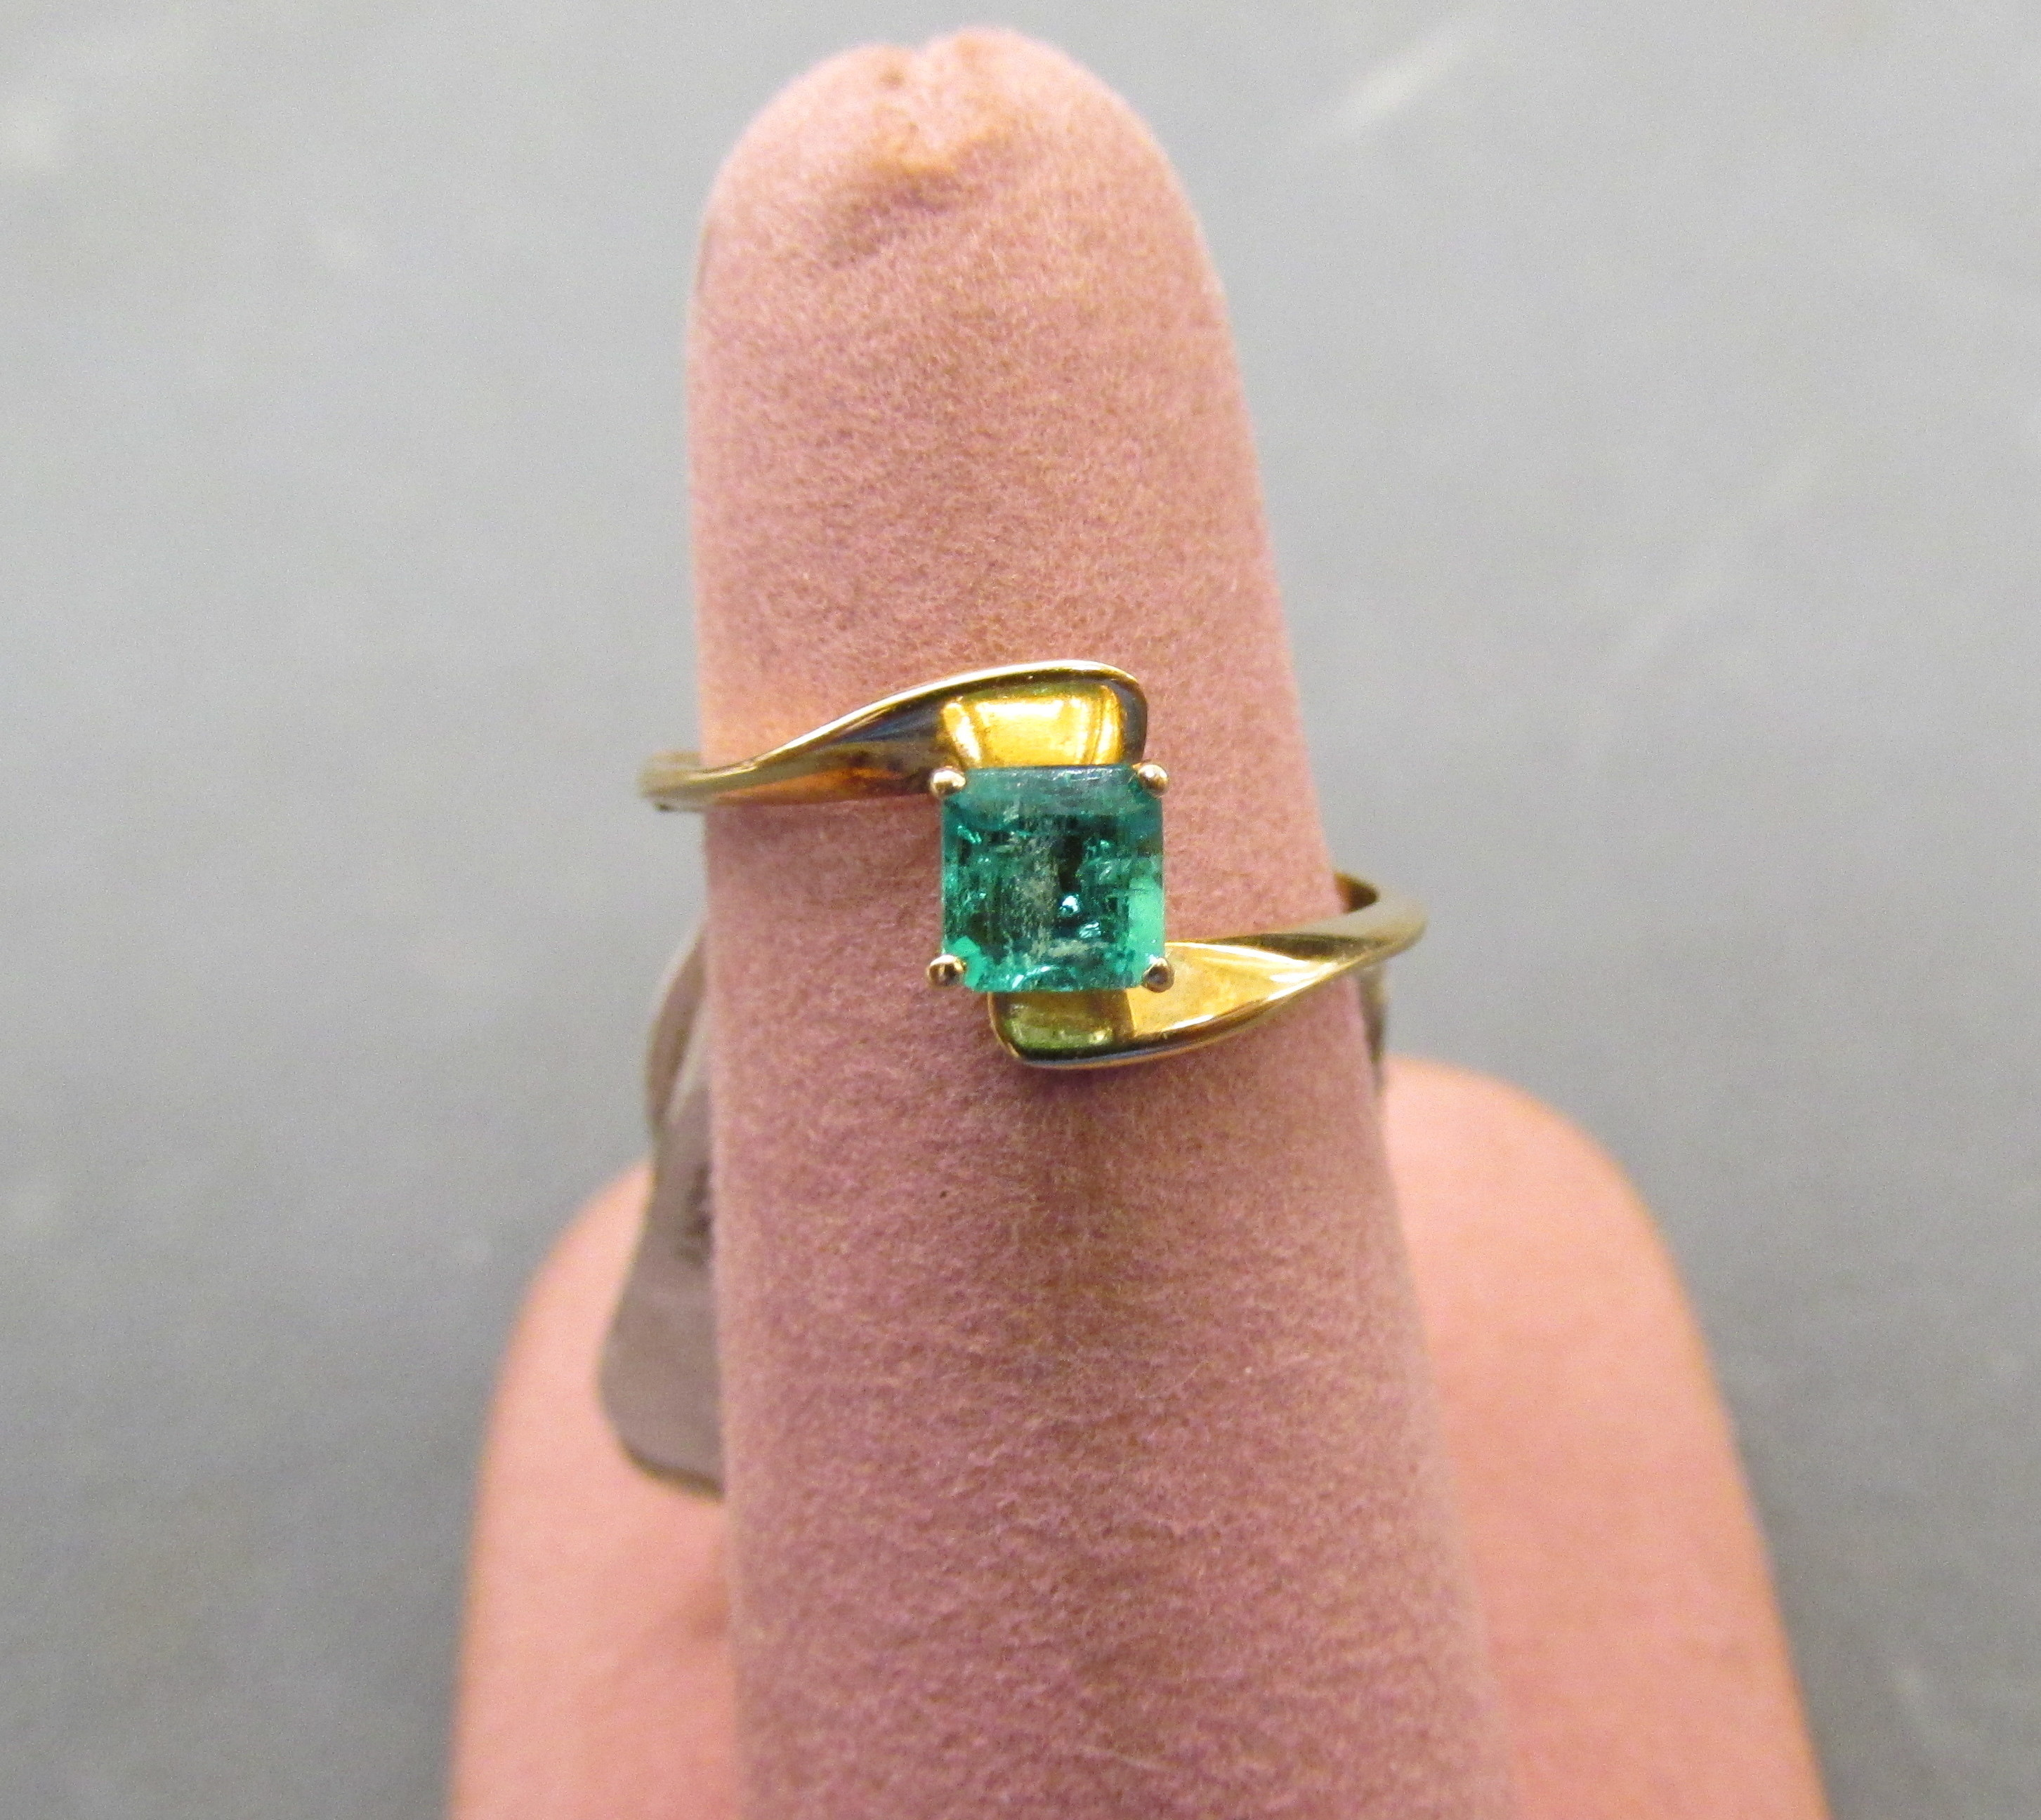 Princess-Cut 0.22 Carat Emerald Ring Set in 18kt Yellow Gold - Size 5 1/2